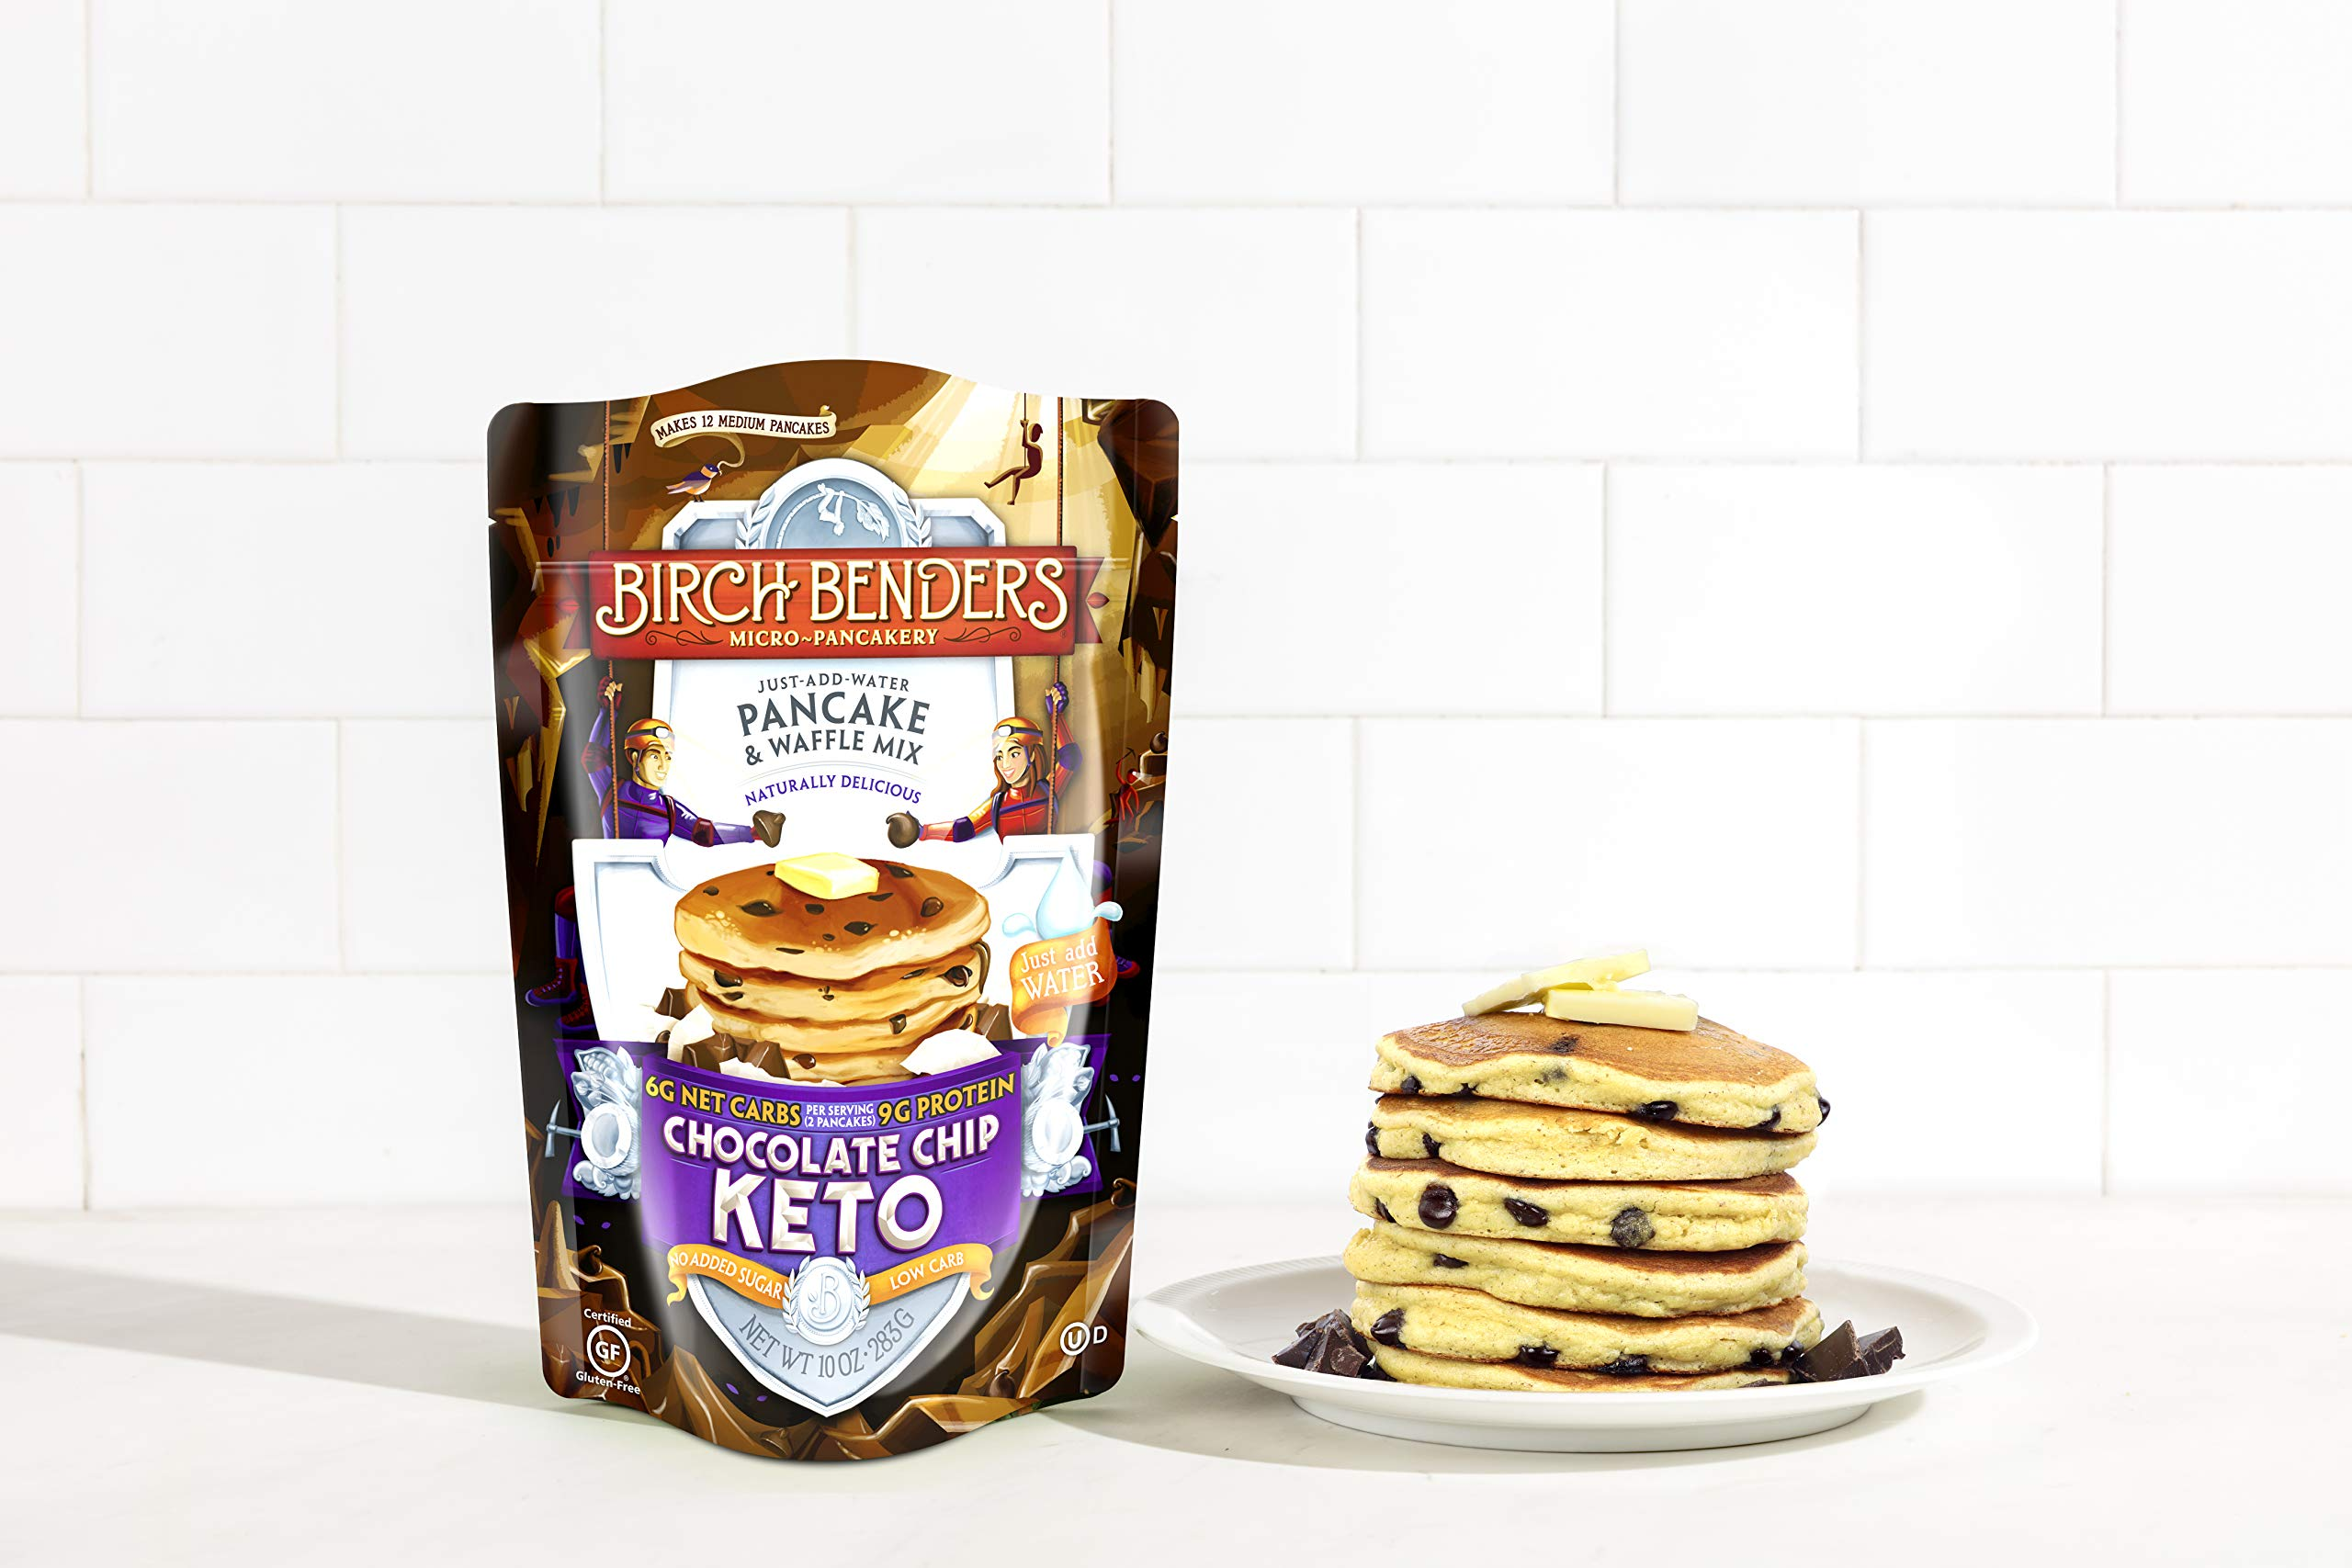 Birch Benders Keto Chocolate Chip Pancake & Waffle Mix with Almond/Coconut & Cassava Flour, 6 Count by Birch Benders (Image #4)